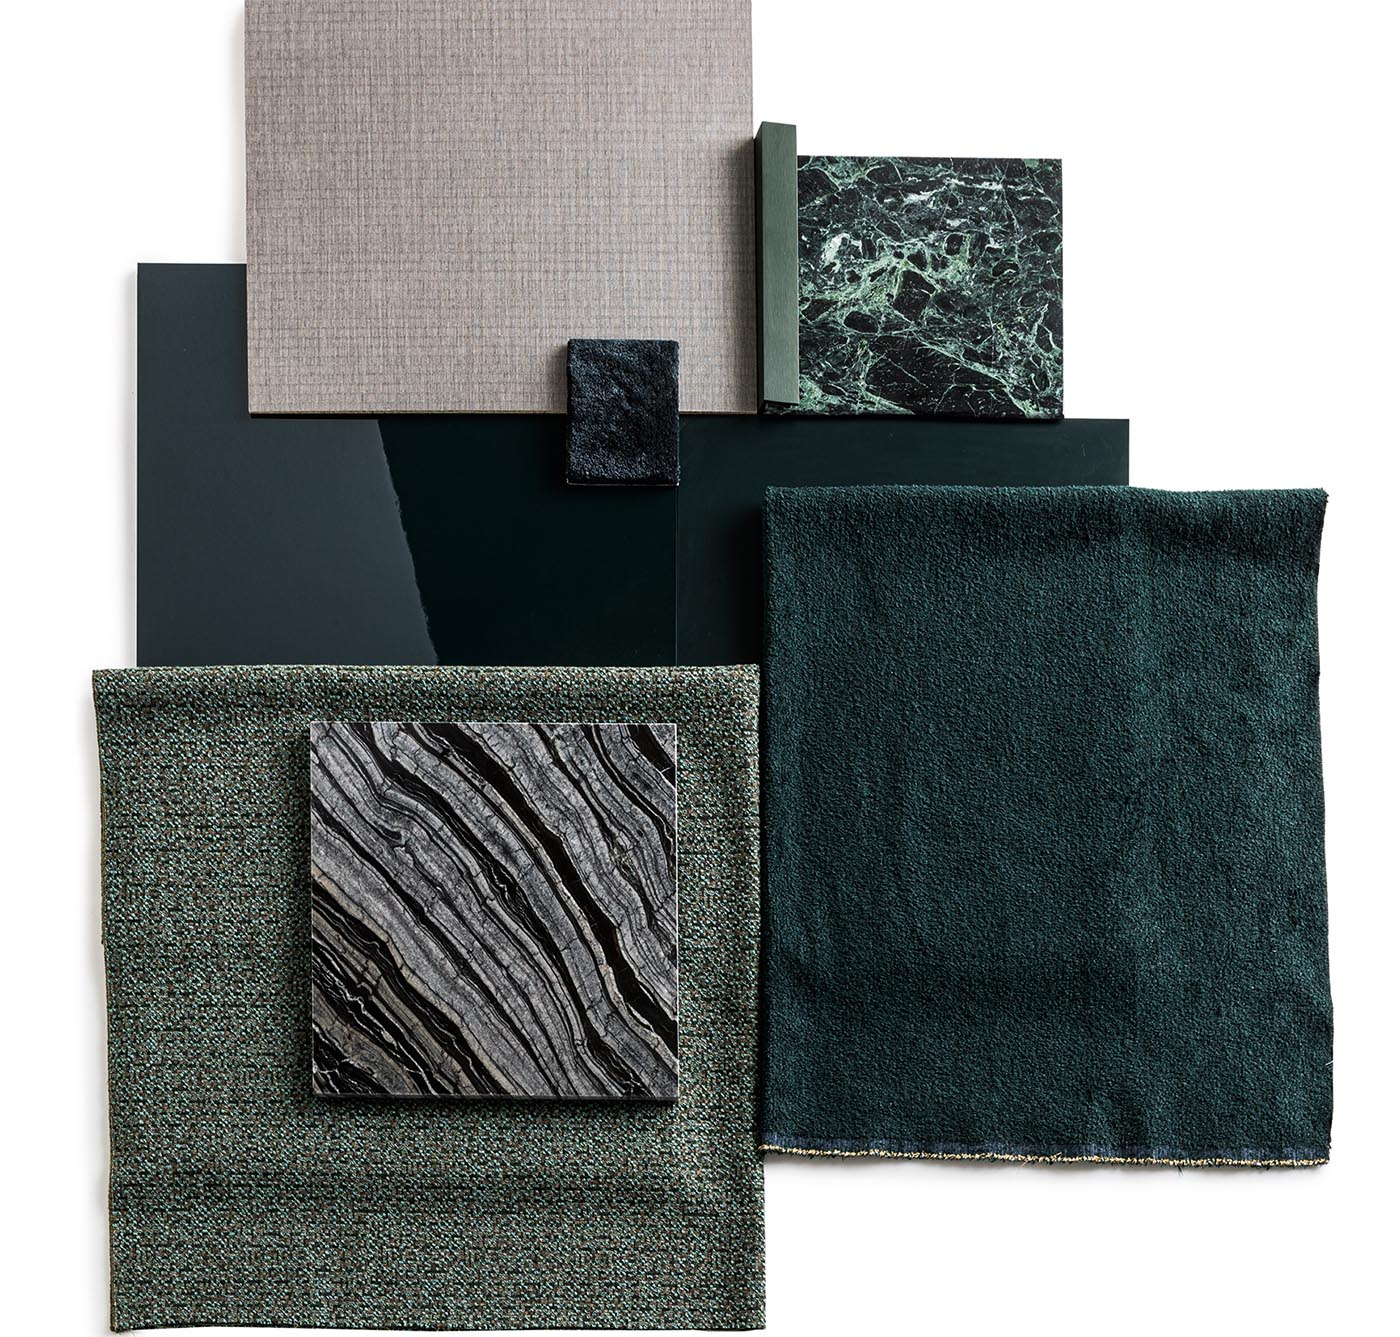 Modern furniture fabric choices from Italian company Molteni&C.